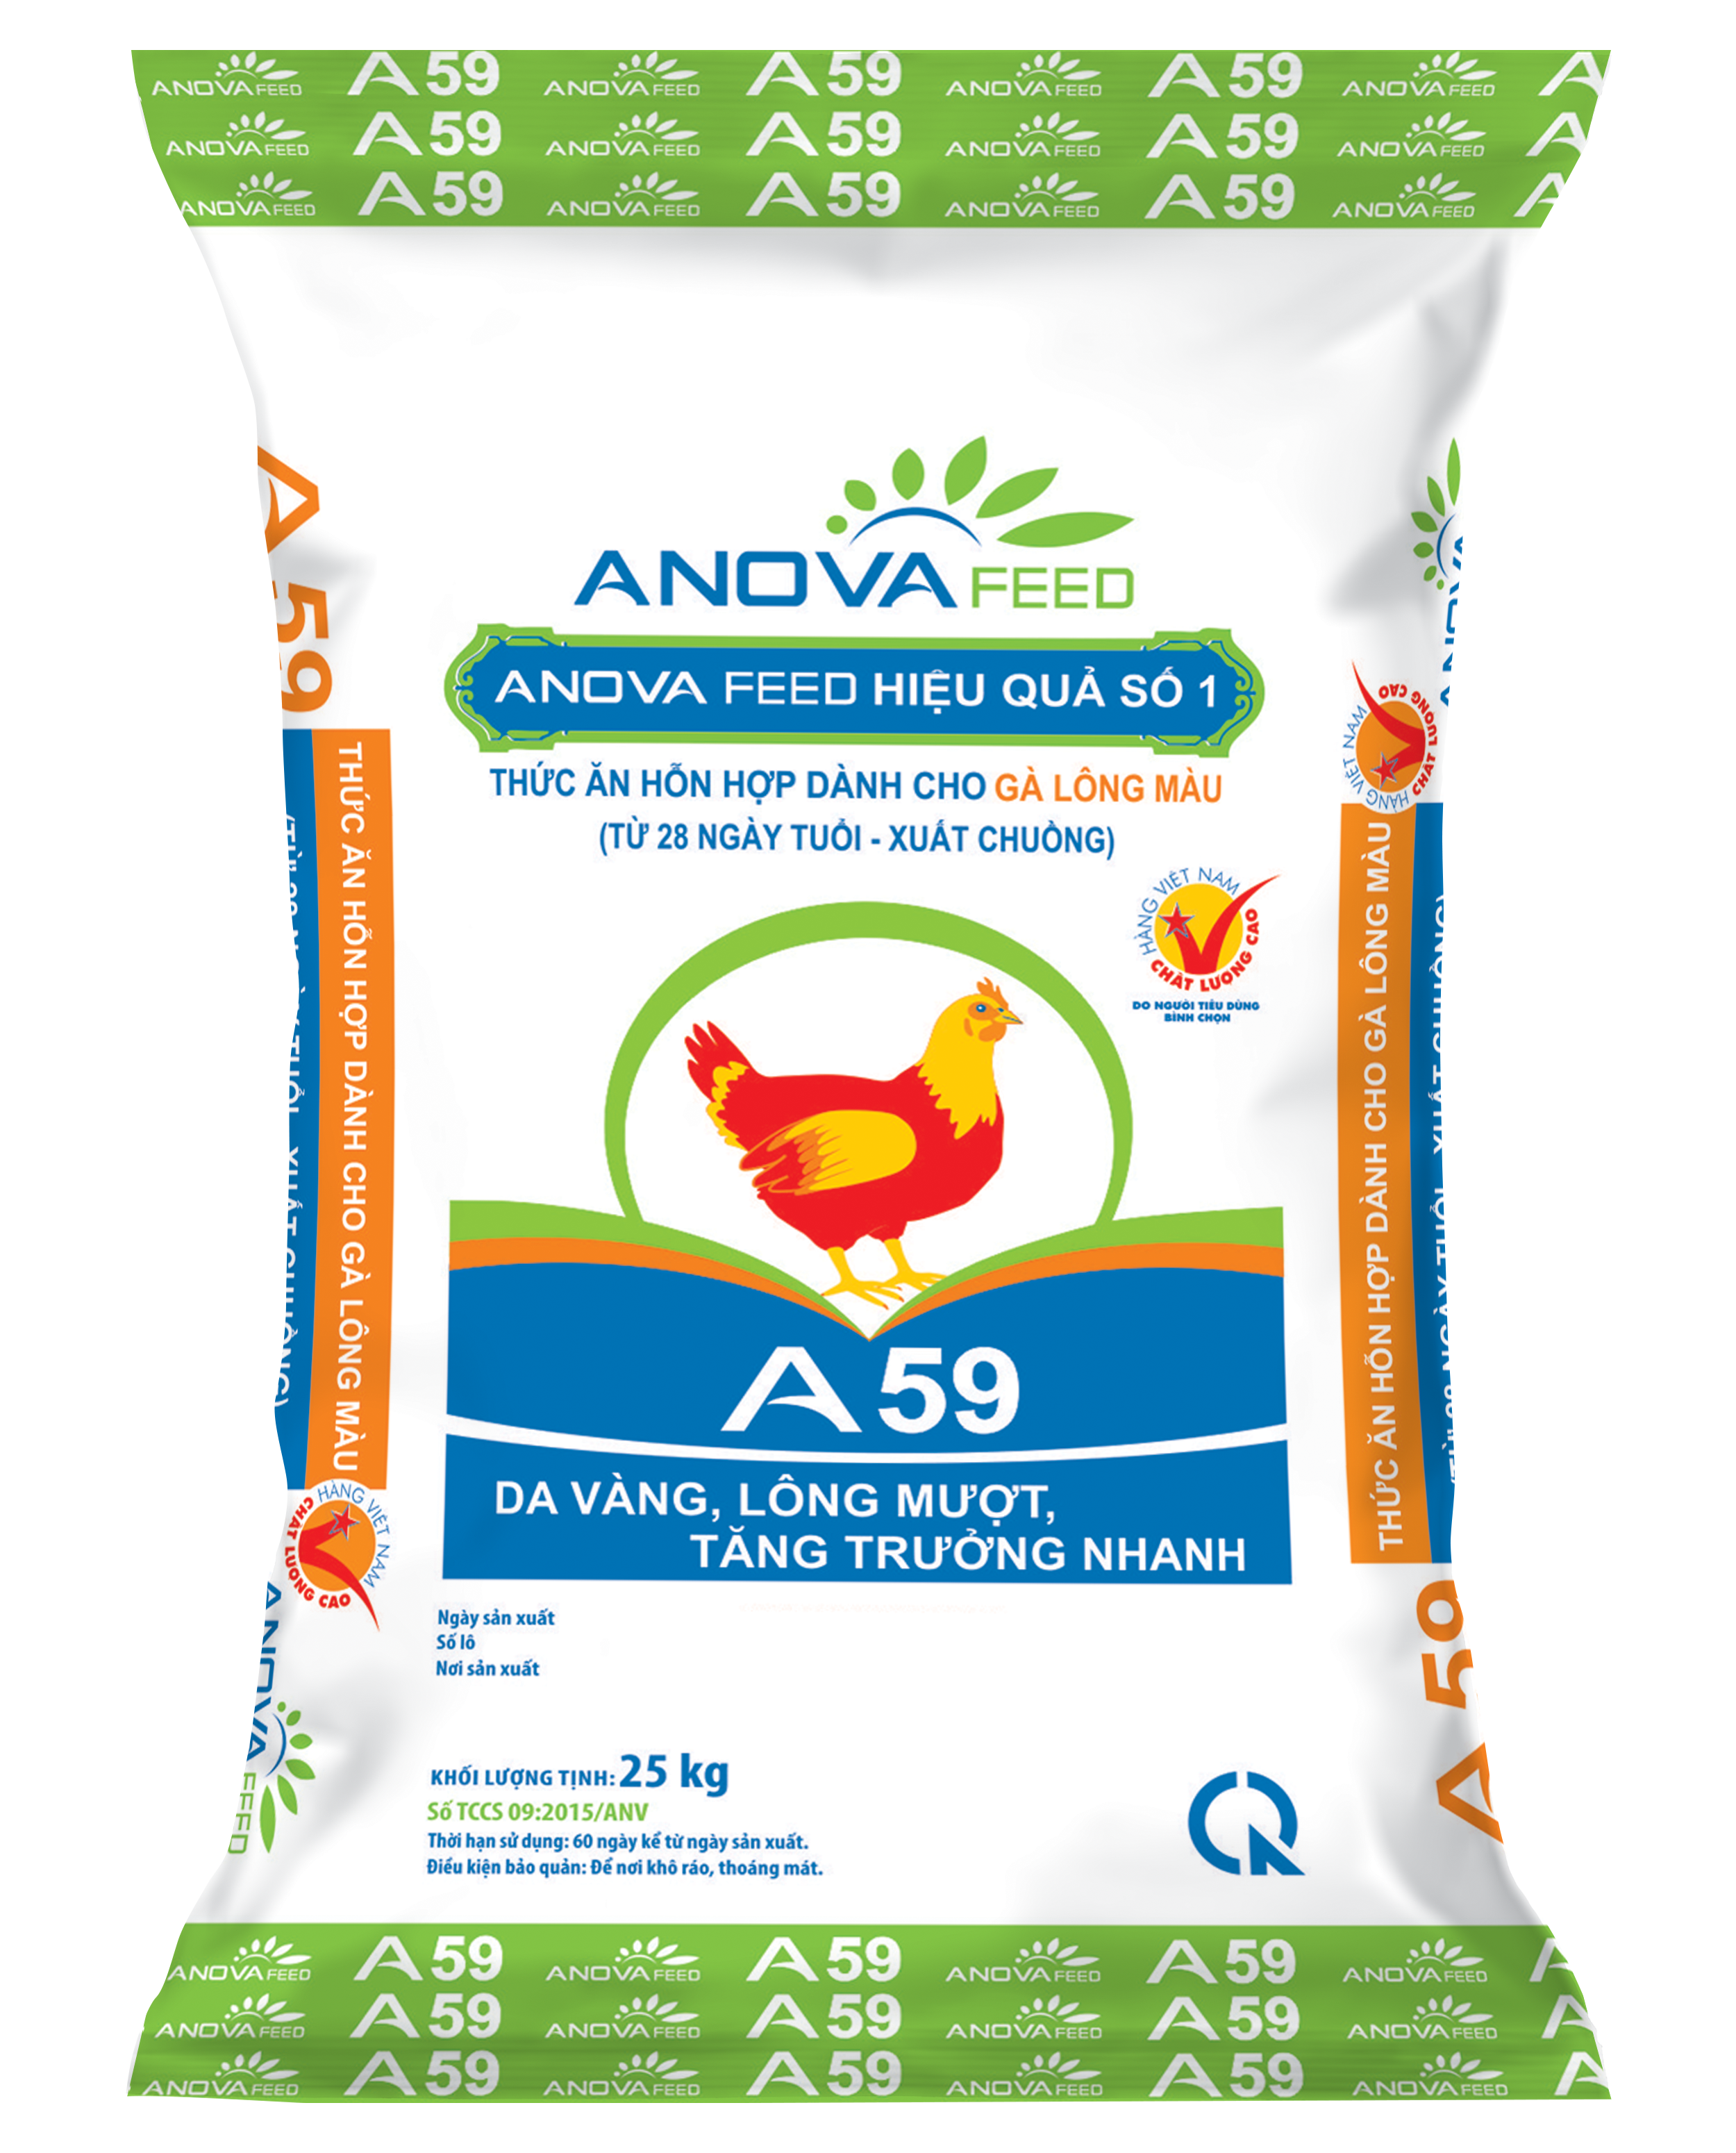 Color poultry feed (28 days - market)